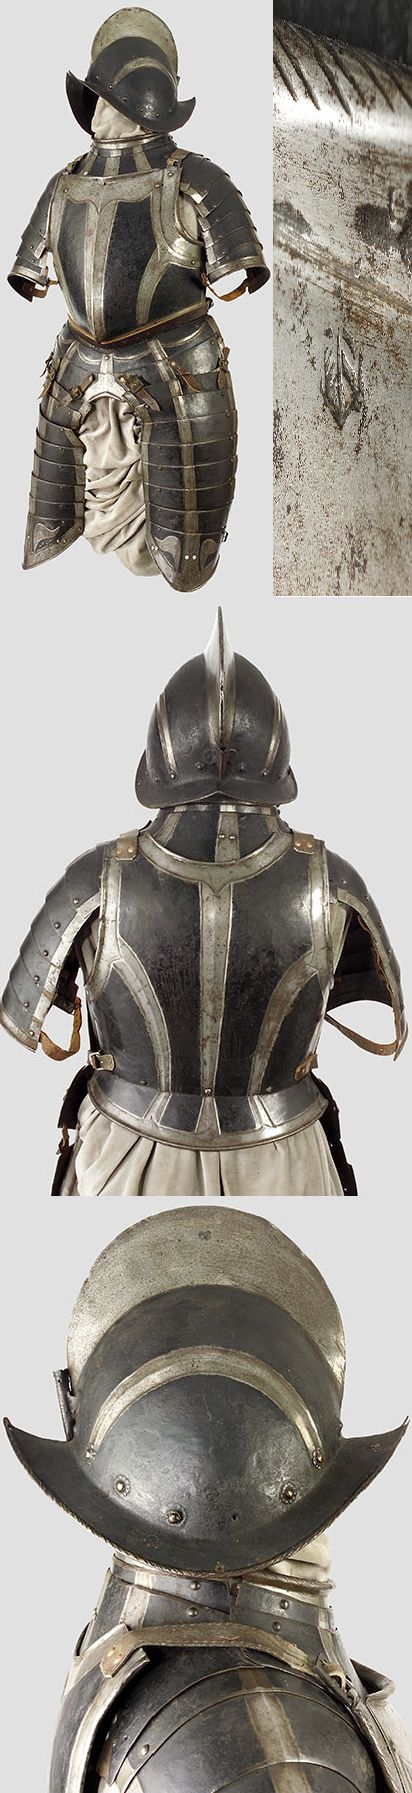 A black and white half-armour  Nuremberg, circa 1580/90 -(But this looks Spanish, like the ones worn by the ones who came to the Americas)..